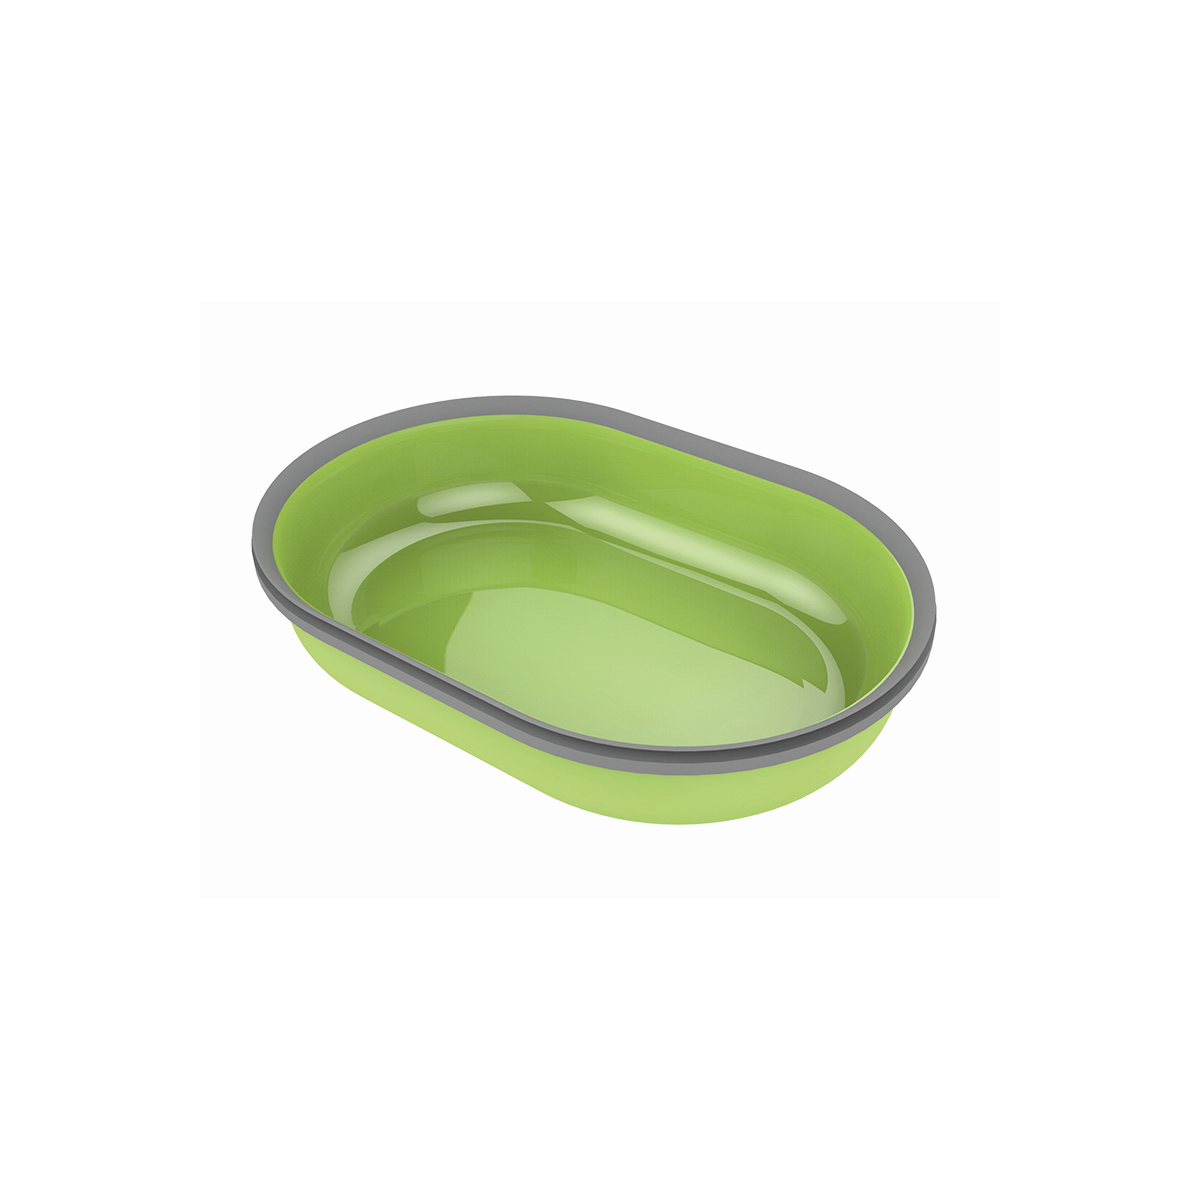 SUREFEED FEEDER BOWL GREEN 00001